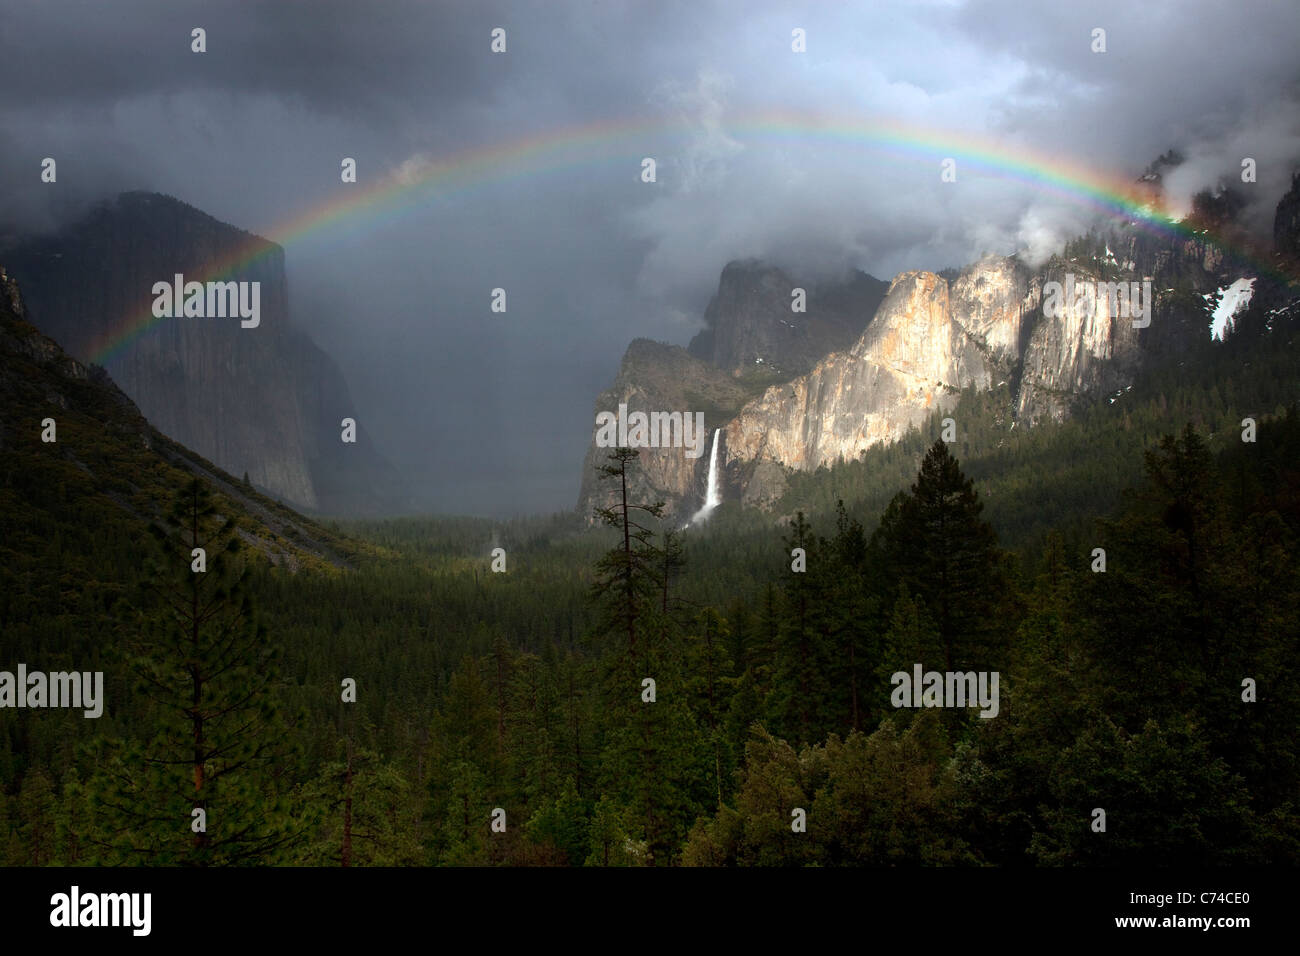 A beautiful rainbow appears over Yosemite Valley following a rain storm. - Stock Image